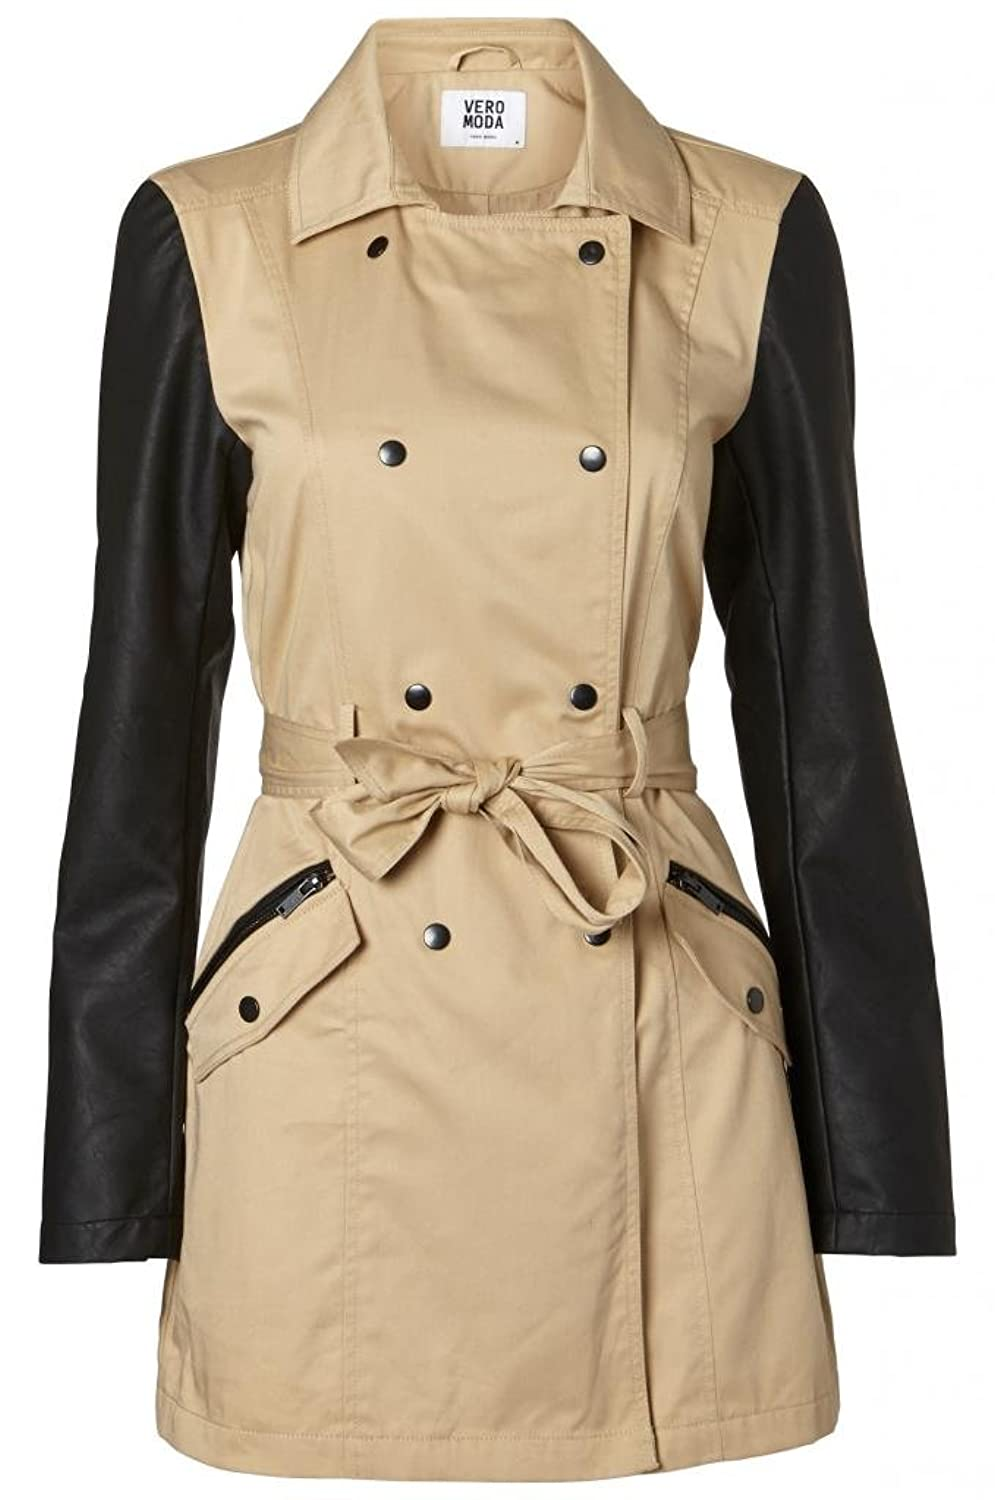 Vero Moda - Track Faux Leather Sleeve Spring Trench Coat logitech logitech m150 черный